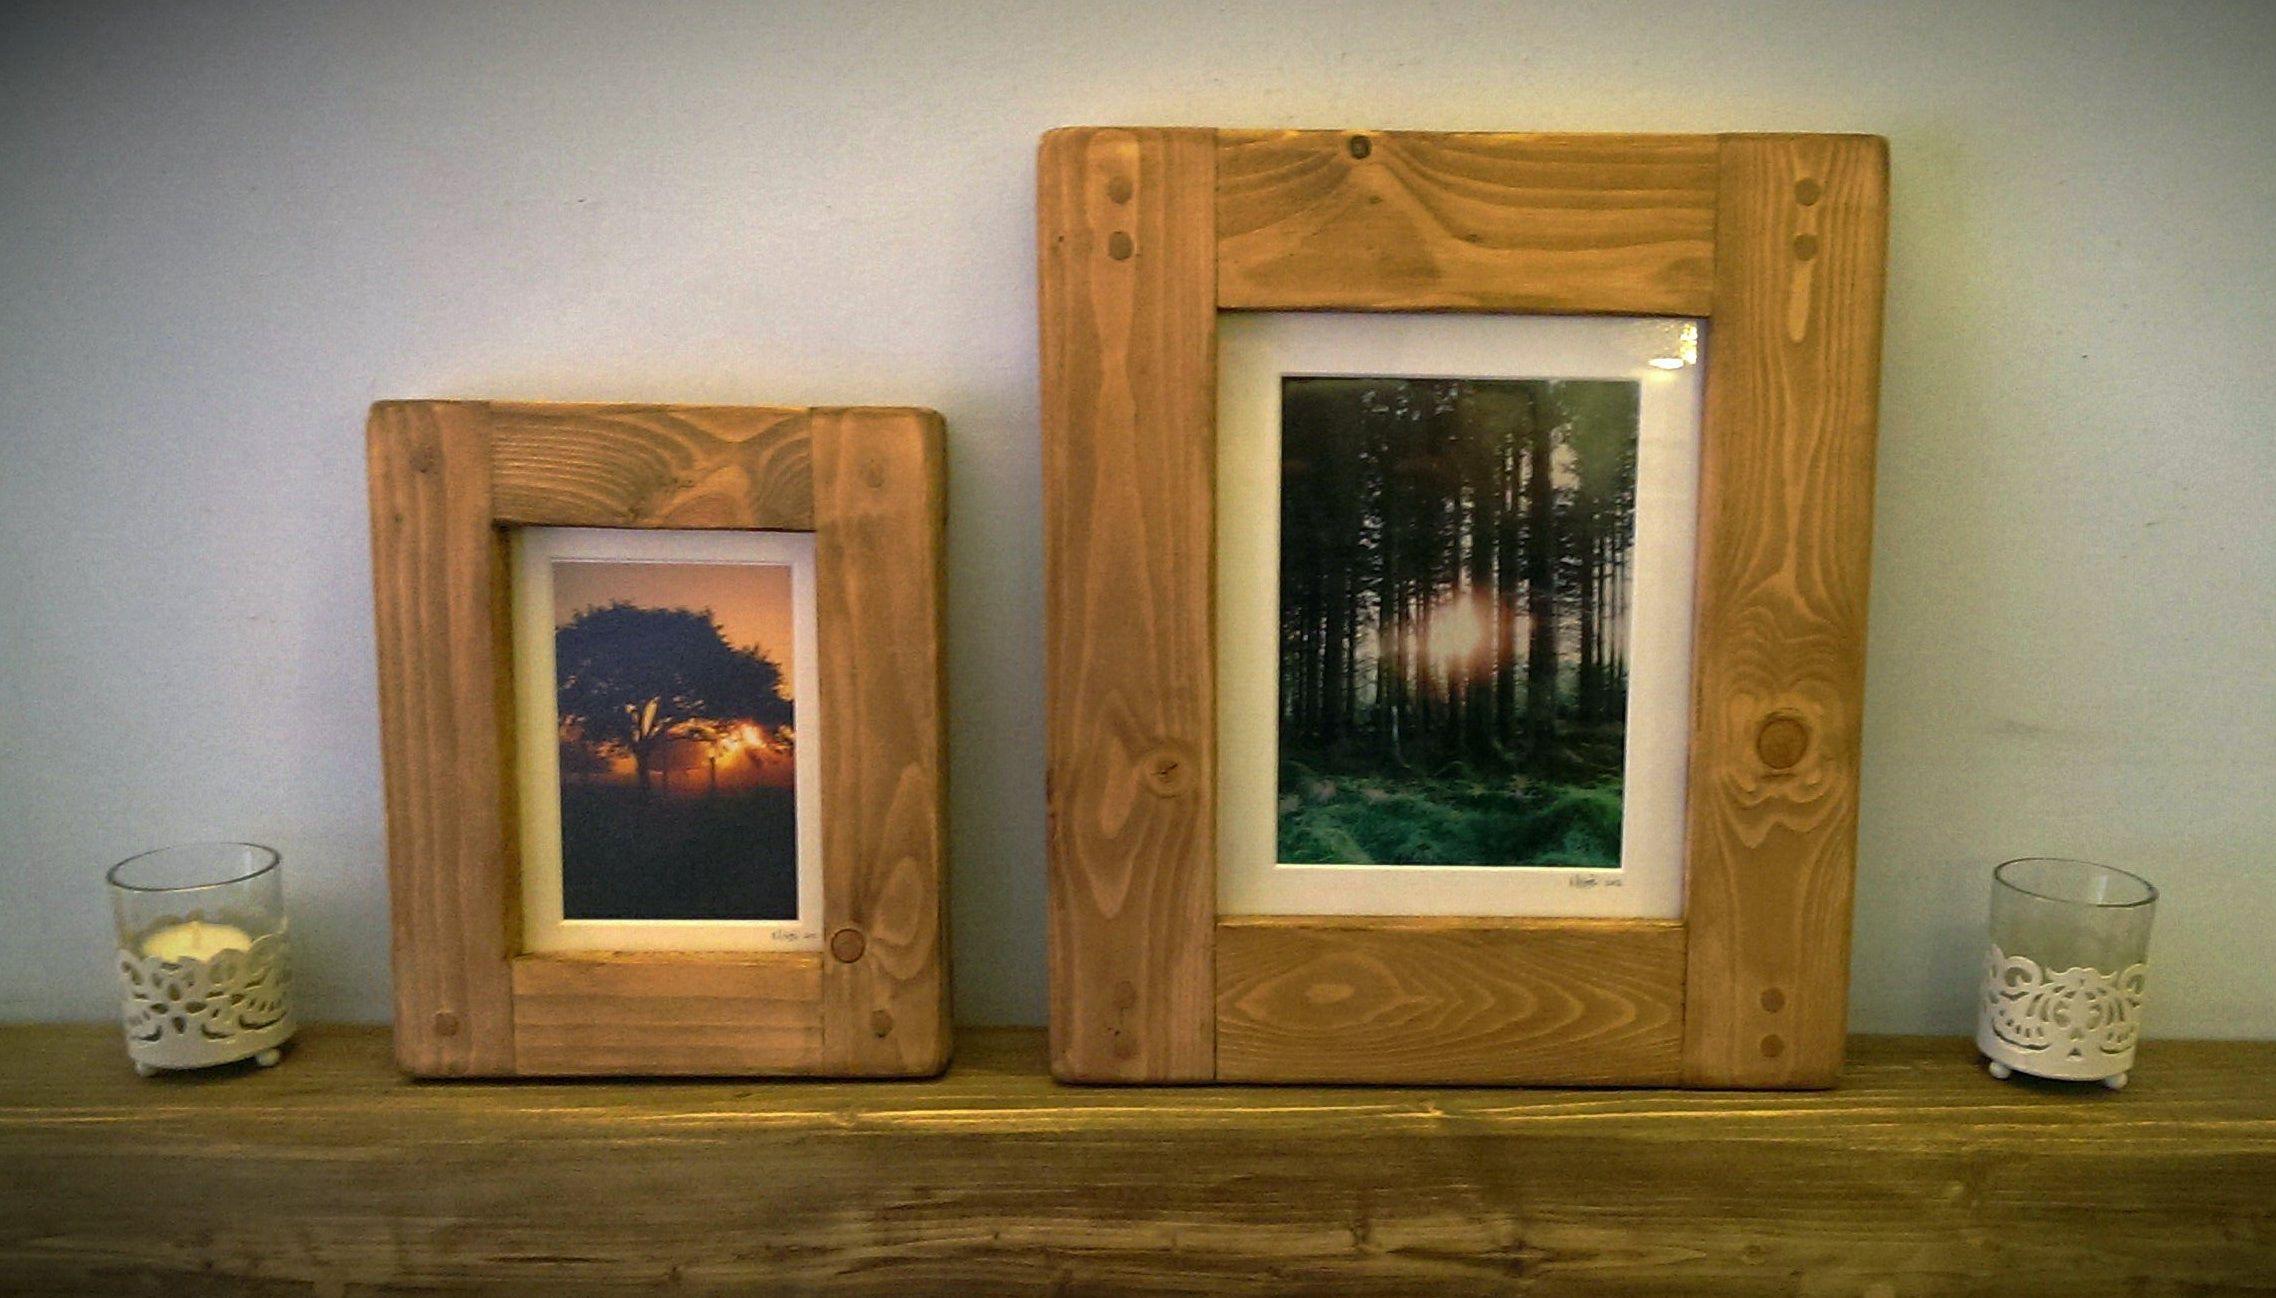 5 x7 and 10 x8 picture frames available now via etsy. Black Bedroom Furniture Sets. Home Design Ideas